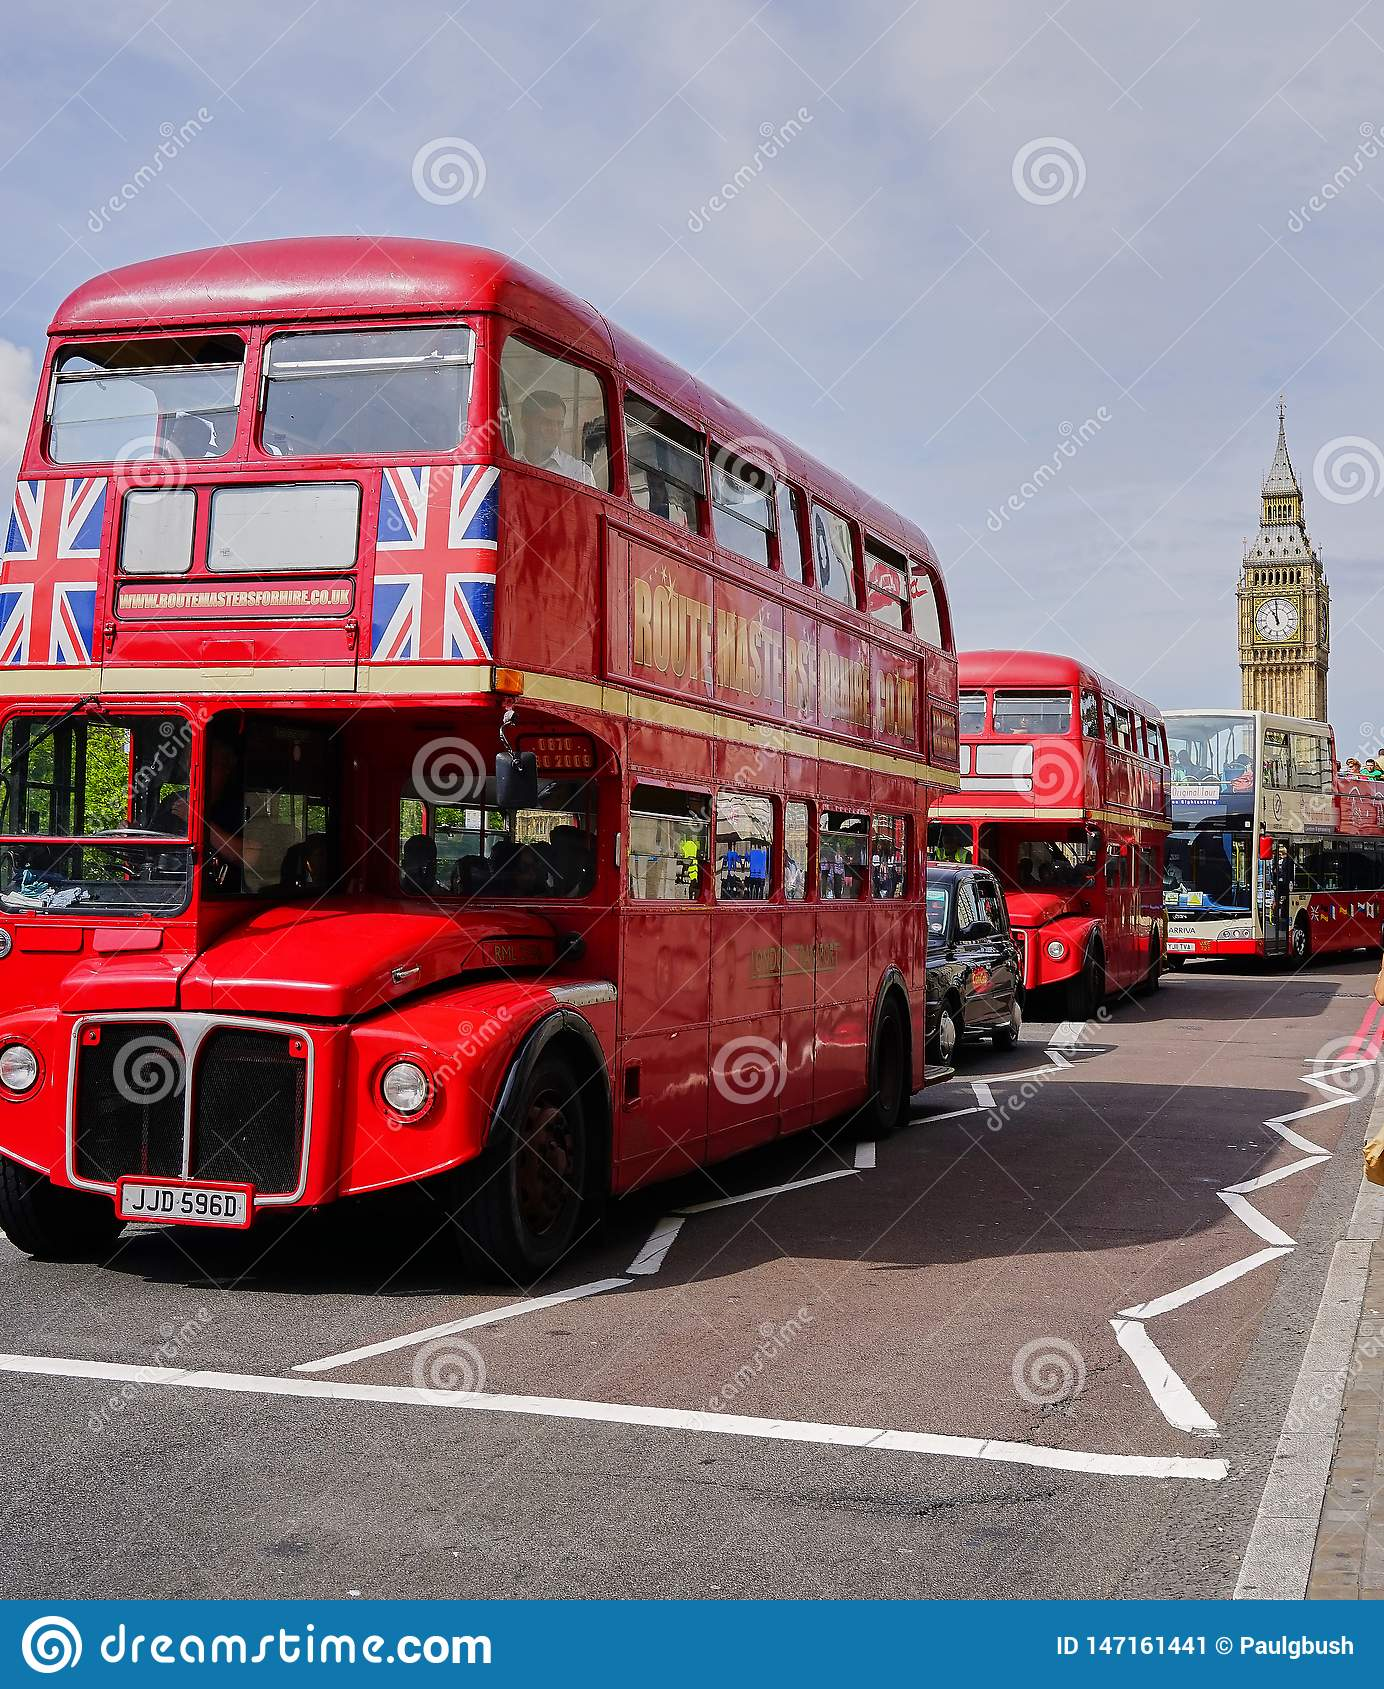 Line of Red Double Decker Buses near Big Ben - London